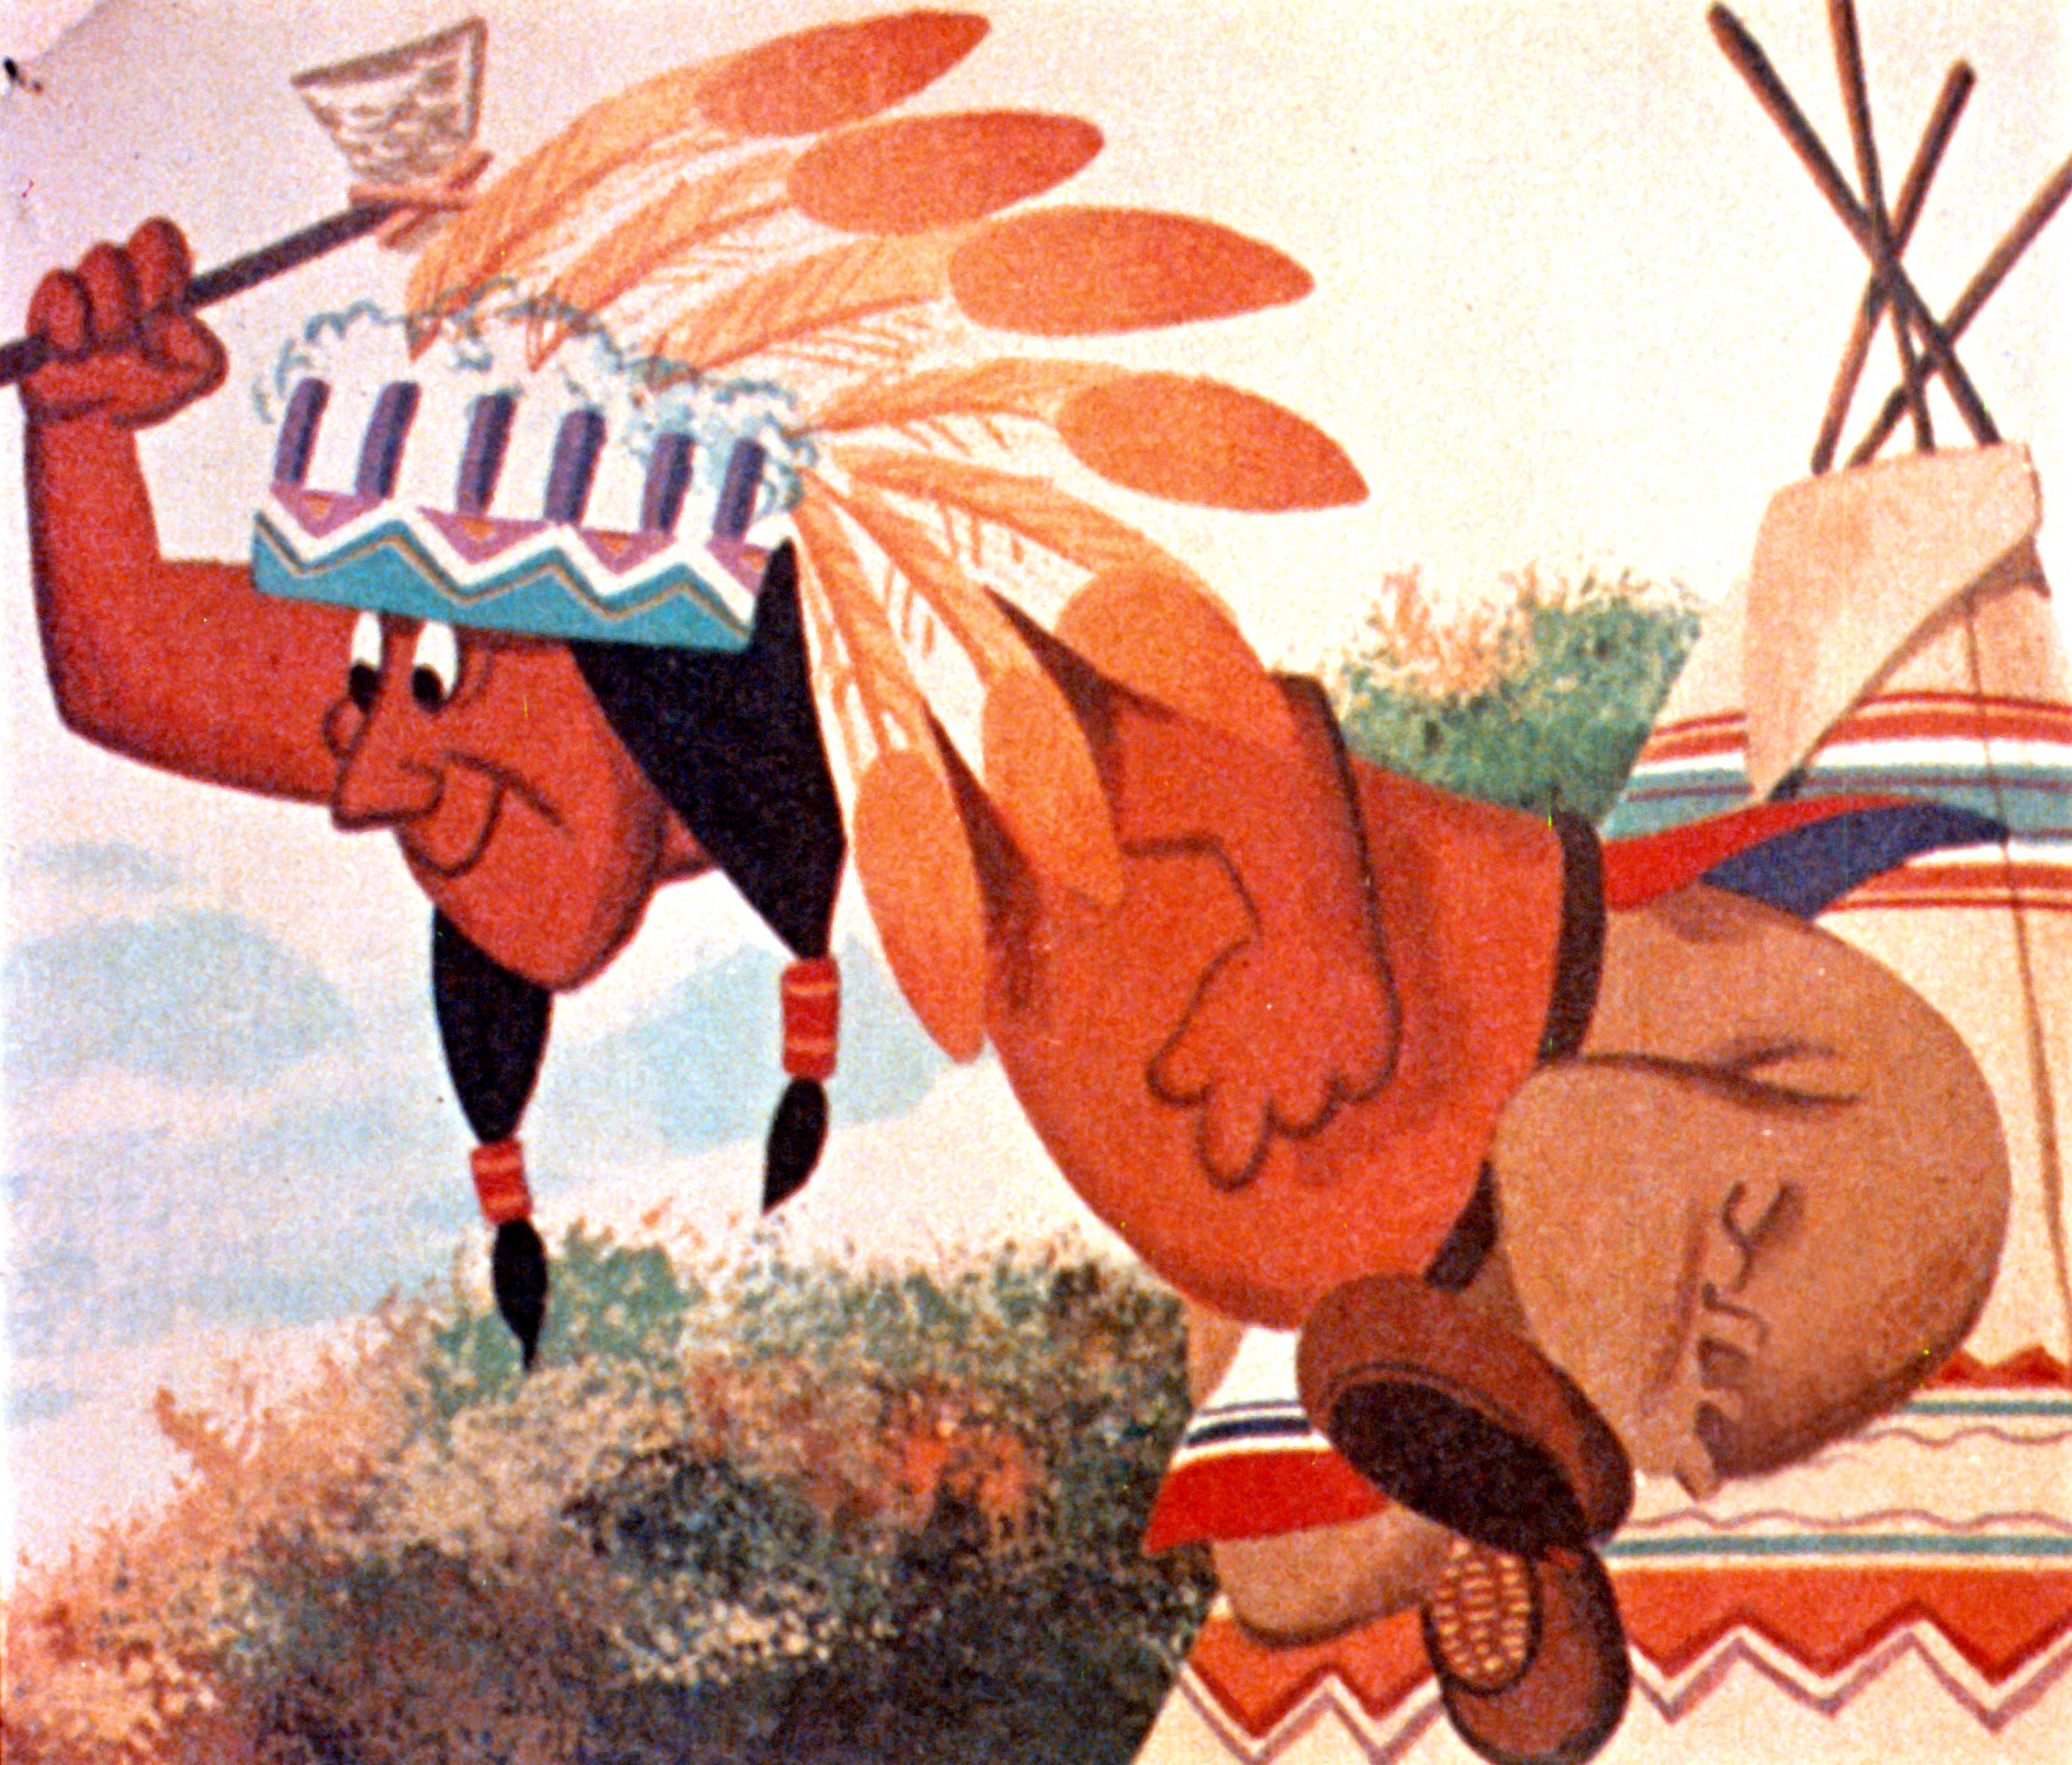 stereotypes and stereotyping of native americans in Reel injun illustrates how native people have contributed much to american cinema both in front of and behind the camera, despite hollywood's frequent stereotypical portrayal of indians.